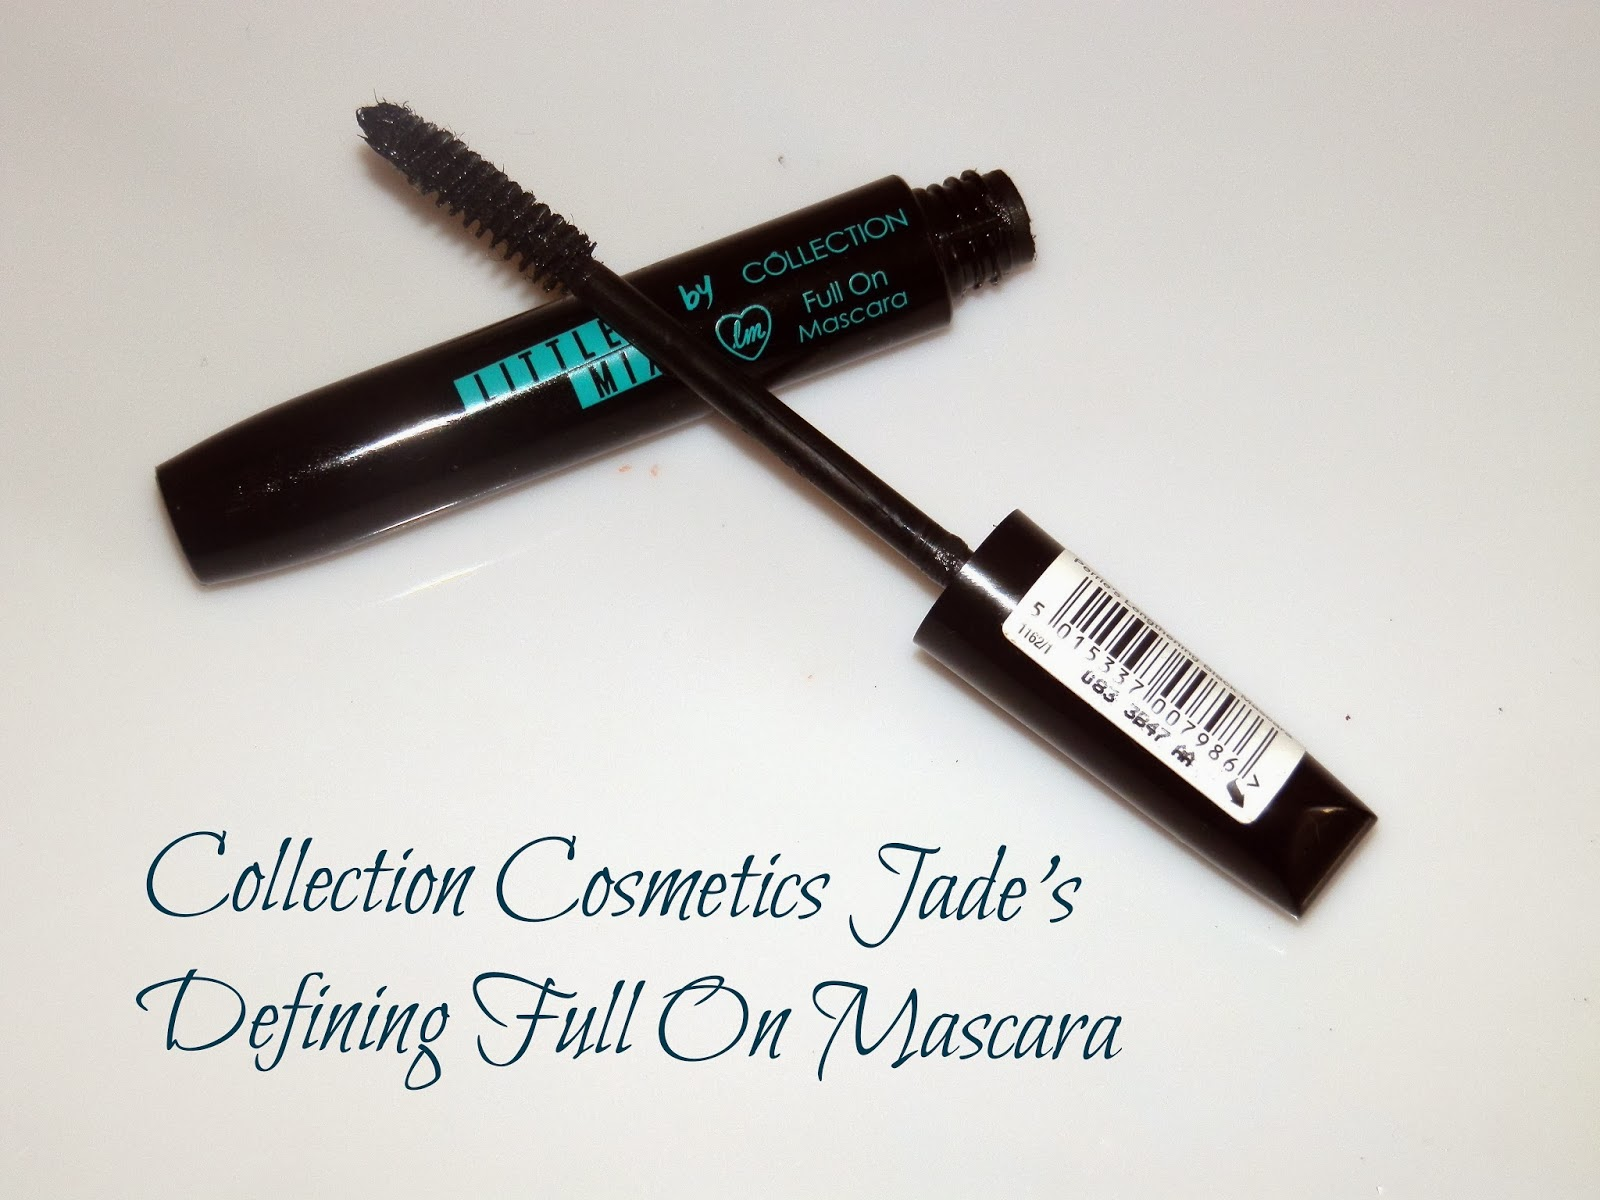 Collection Cosmetics Jade's Defining Full On Mascara Swatches